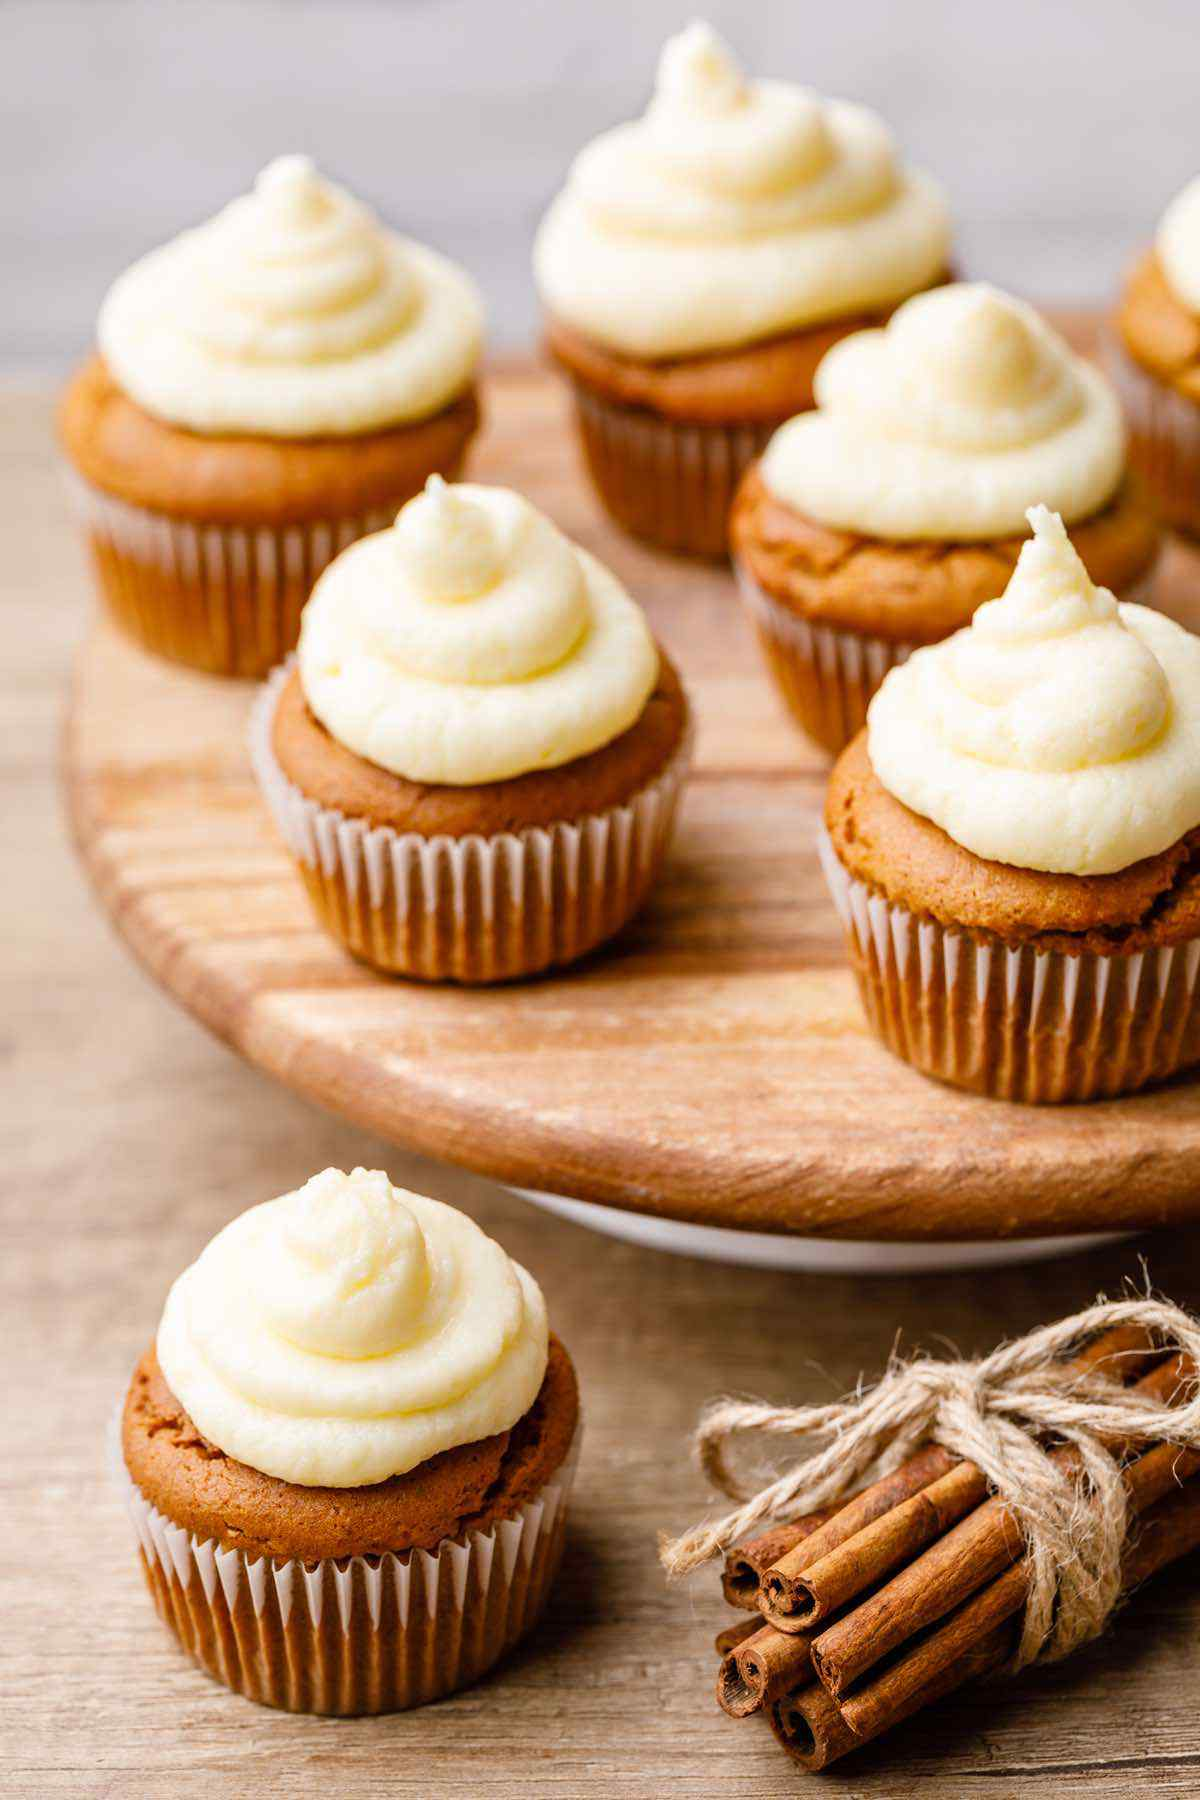 Keto Pumpkin Muffins With Cream Cheese Frosting